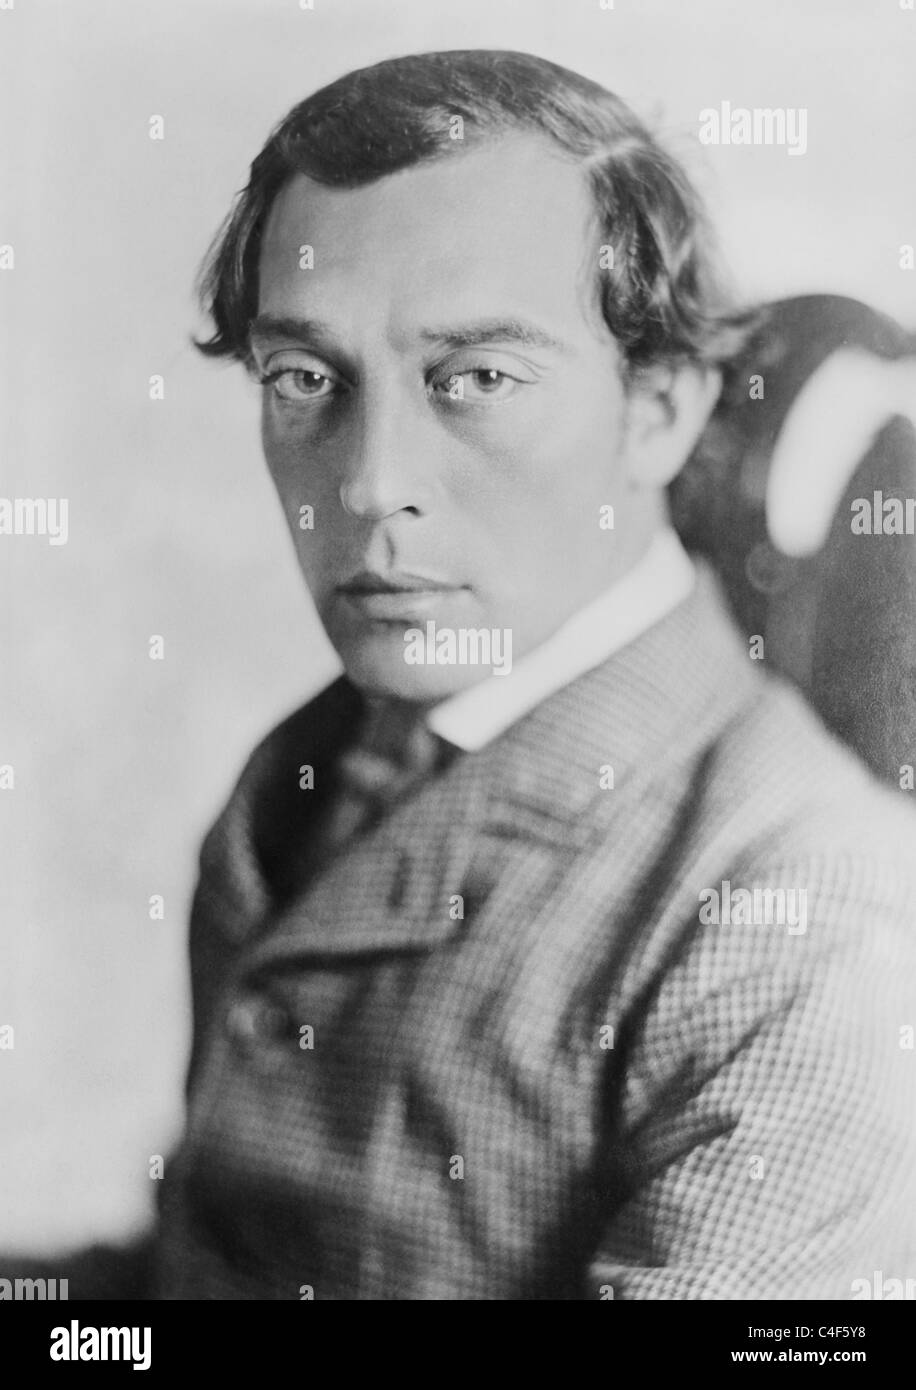 Vintage portrait photo circa 1926 of American comic actor, director, producer and writer Buster Keaton (1895 - 1966). - Stock Image